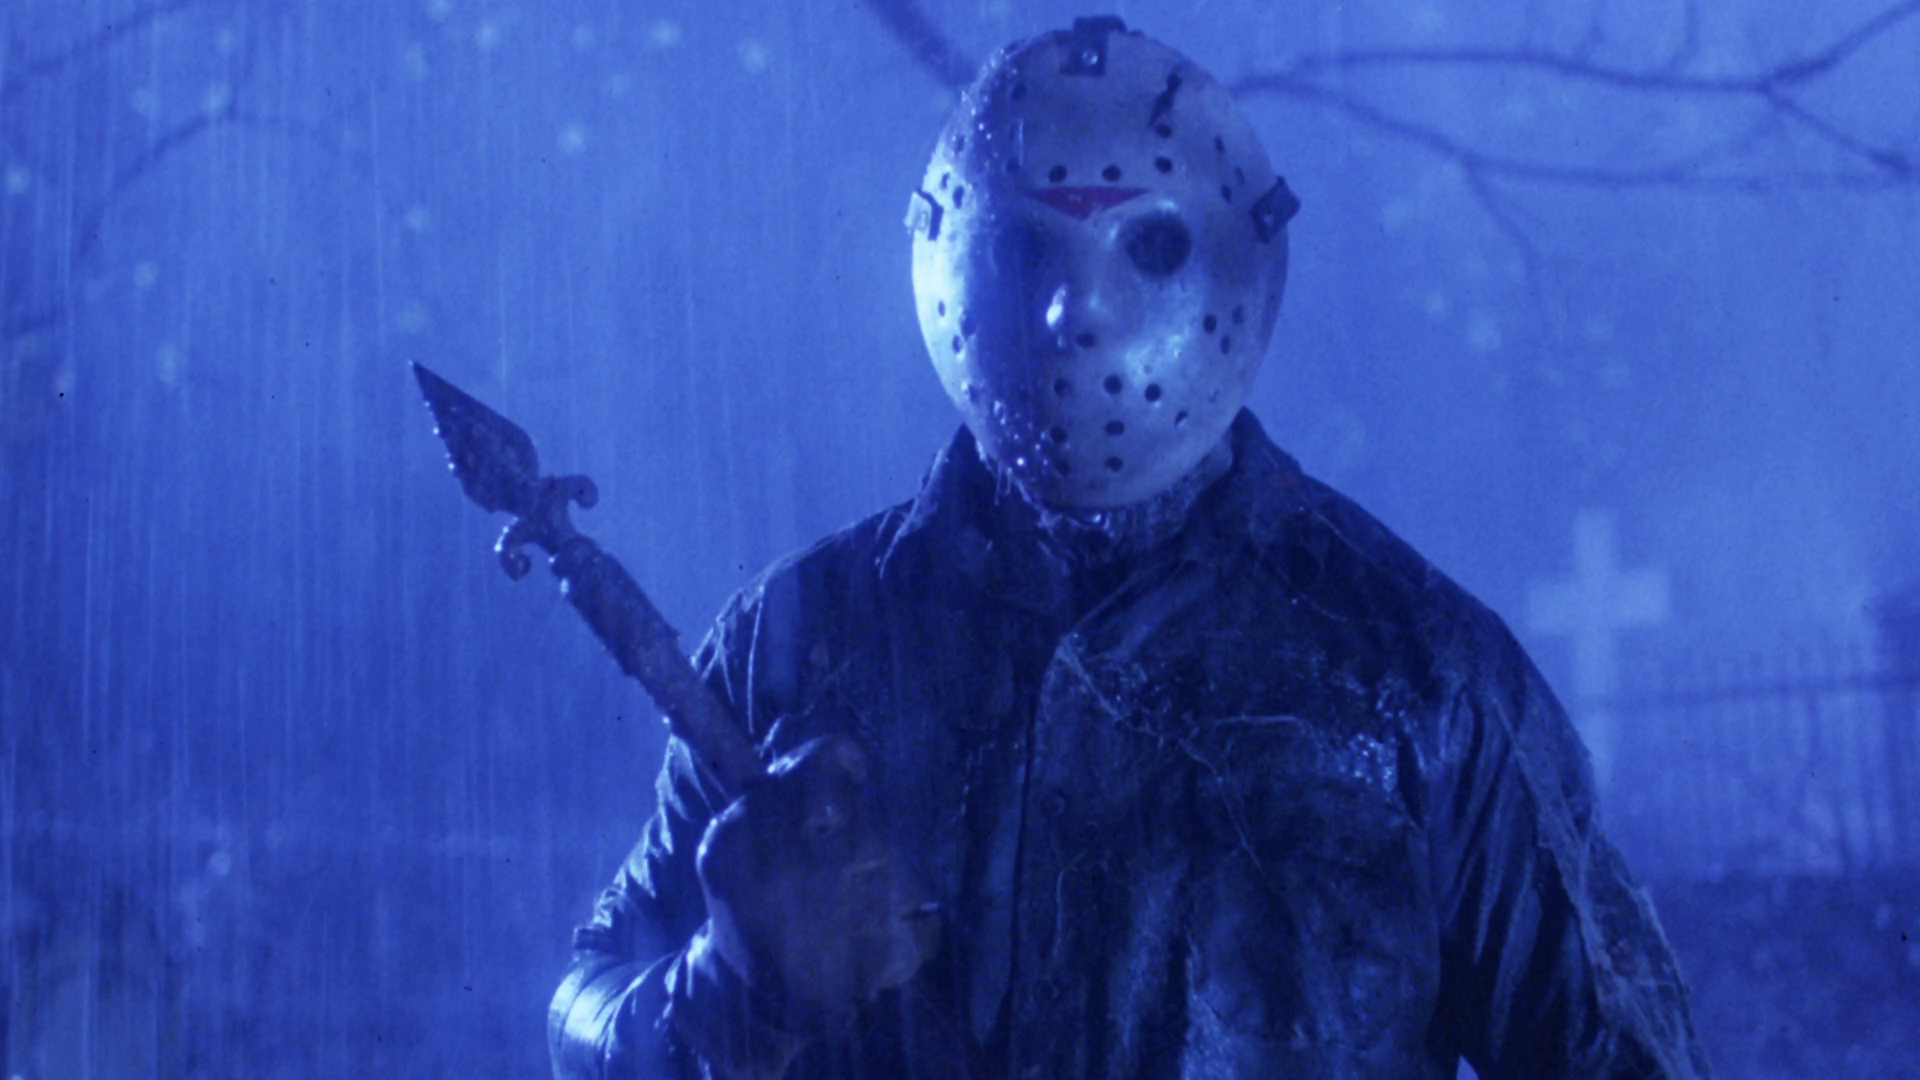 Friday The 13th Will Feature Jason And Pamela Side By